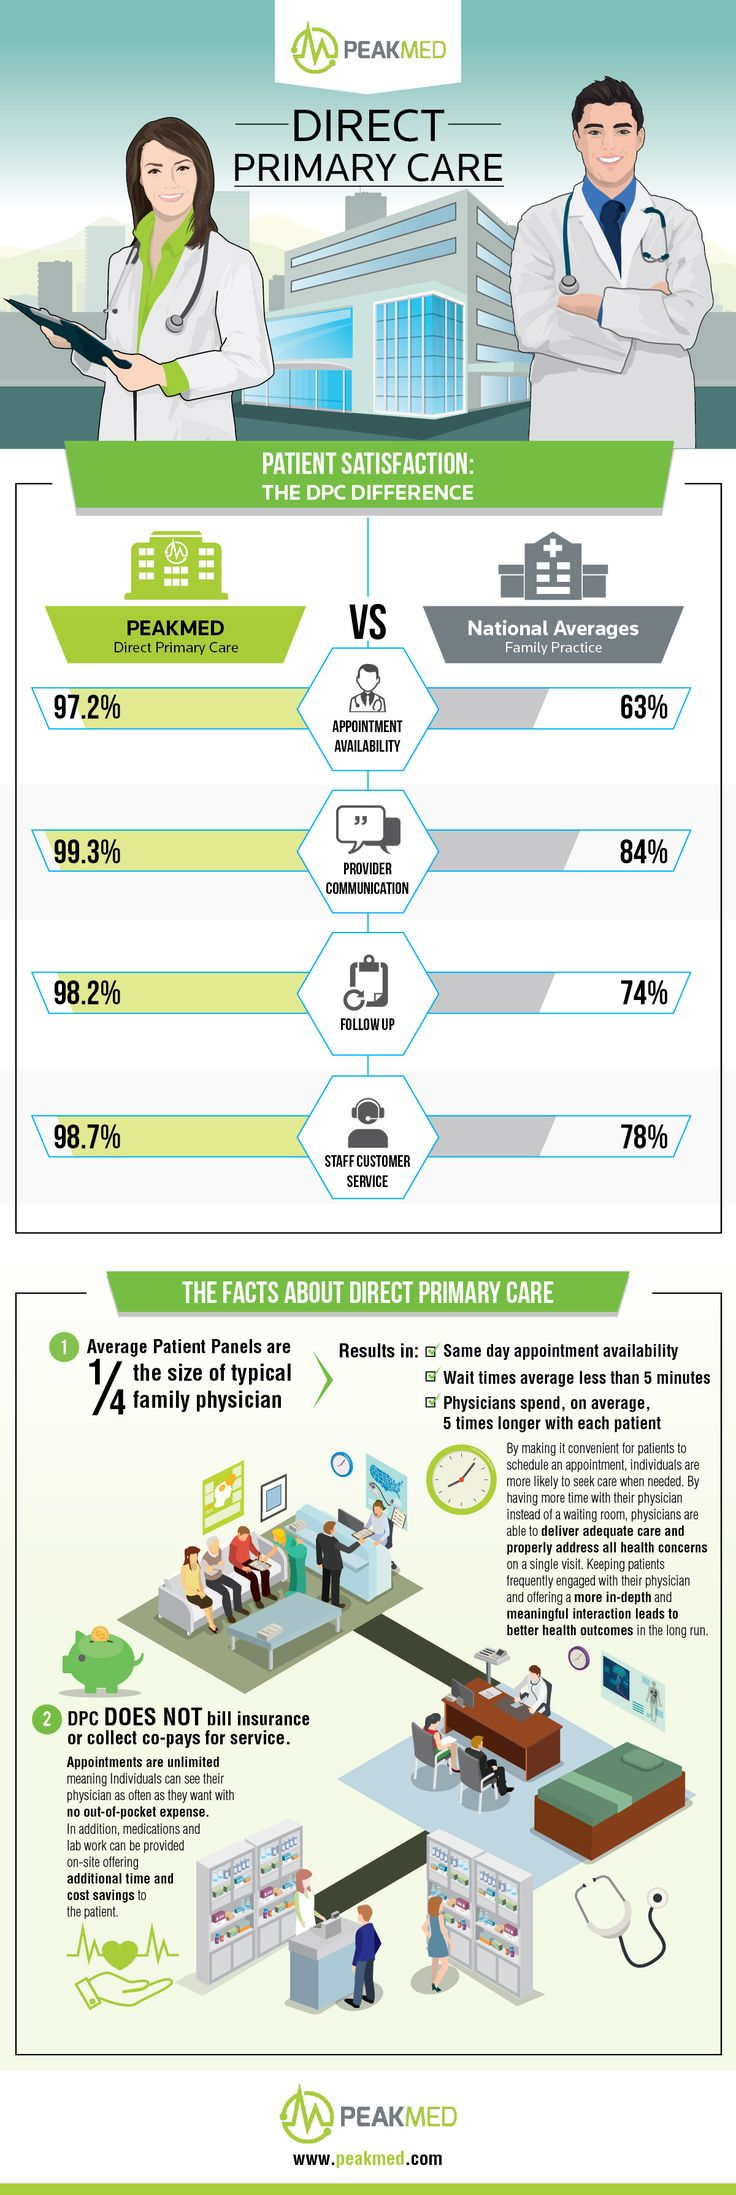 The DPC Difference! Check out these facts about Direct Primary Care... #DPC #DirectPrimaryCare